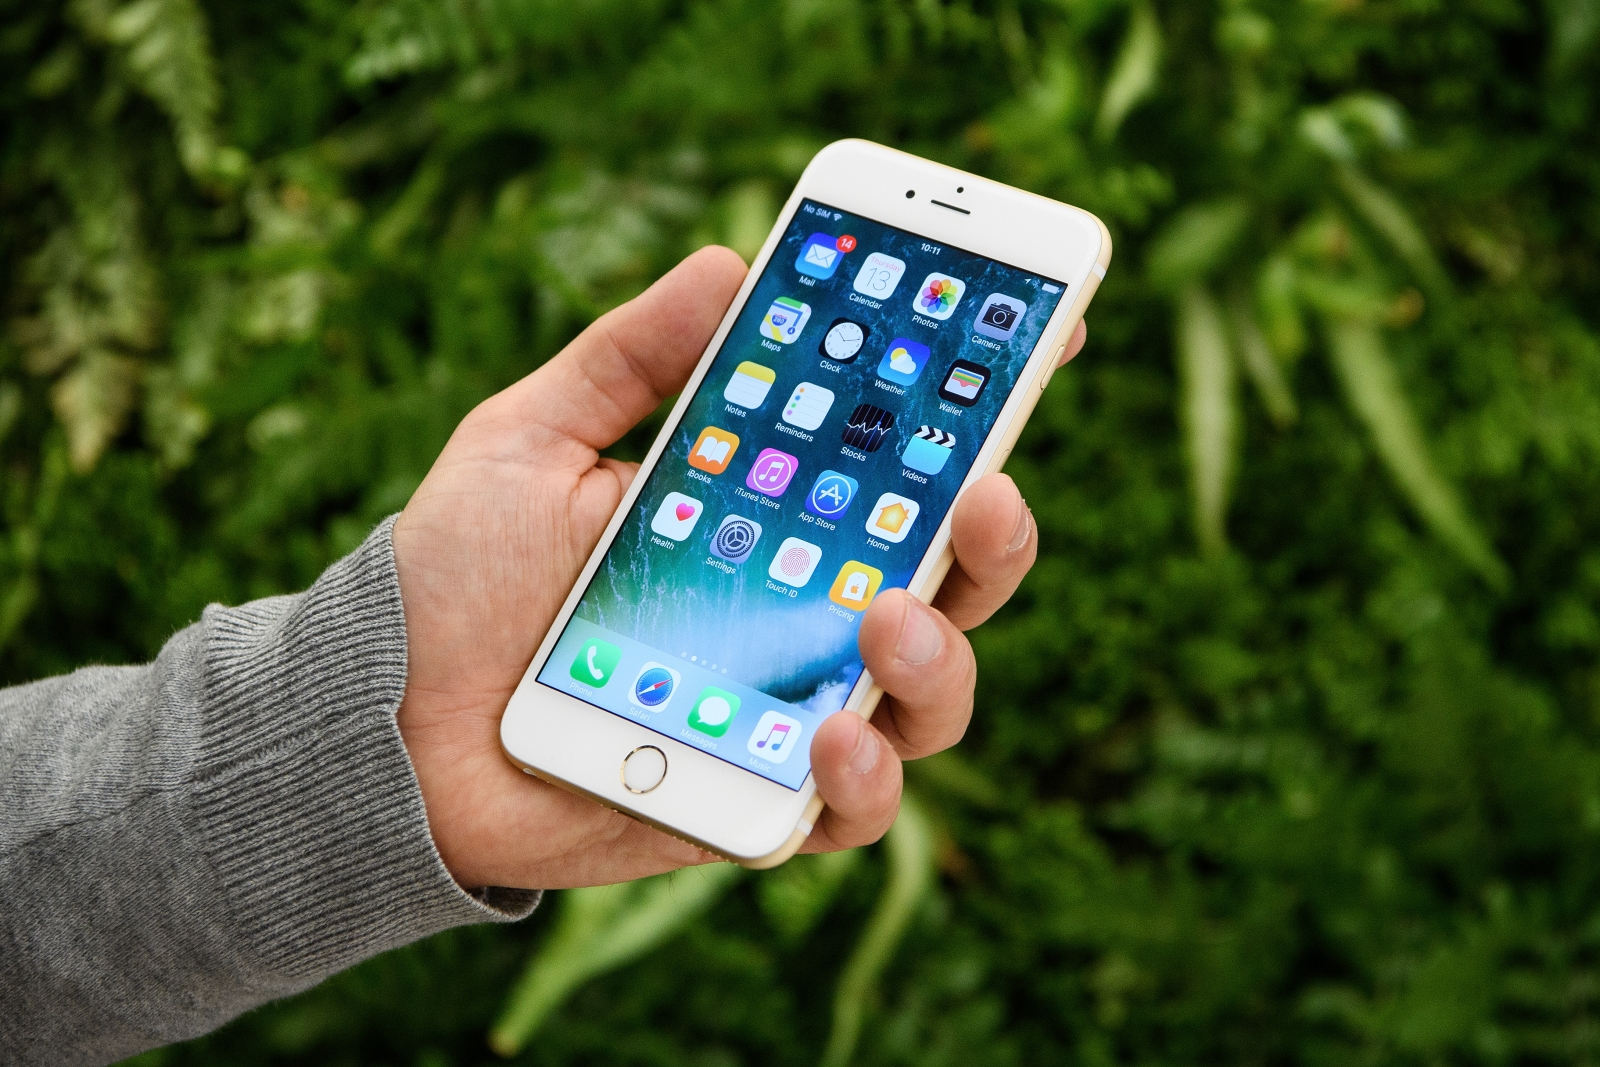 iPhone 8 to use OLED screen